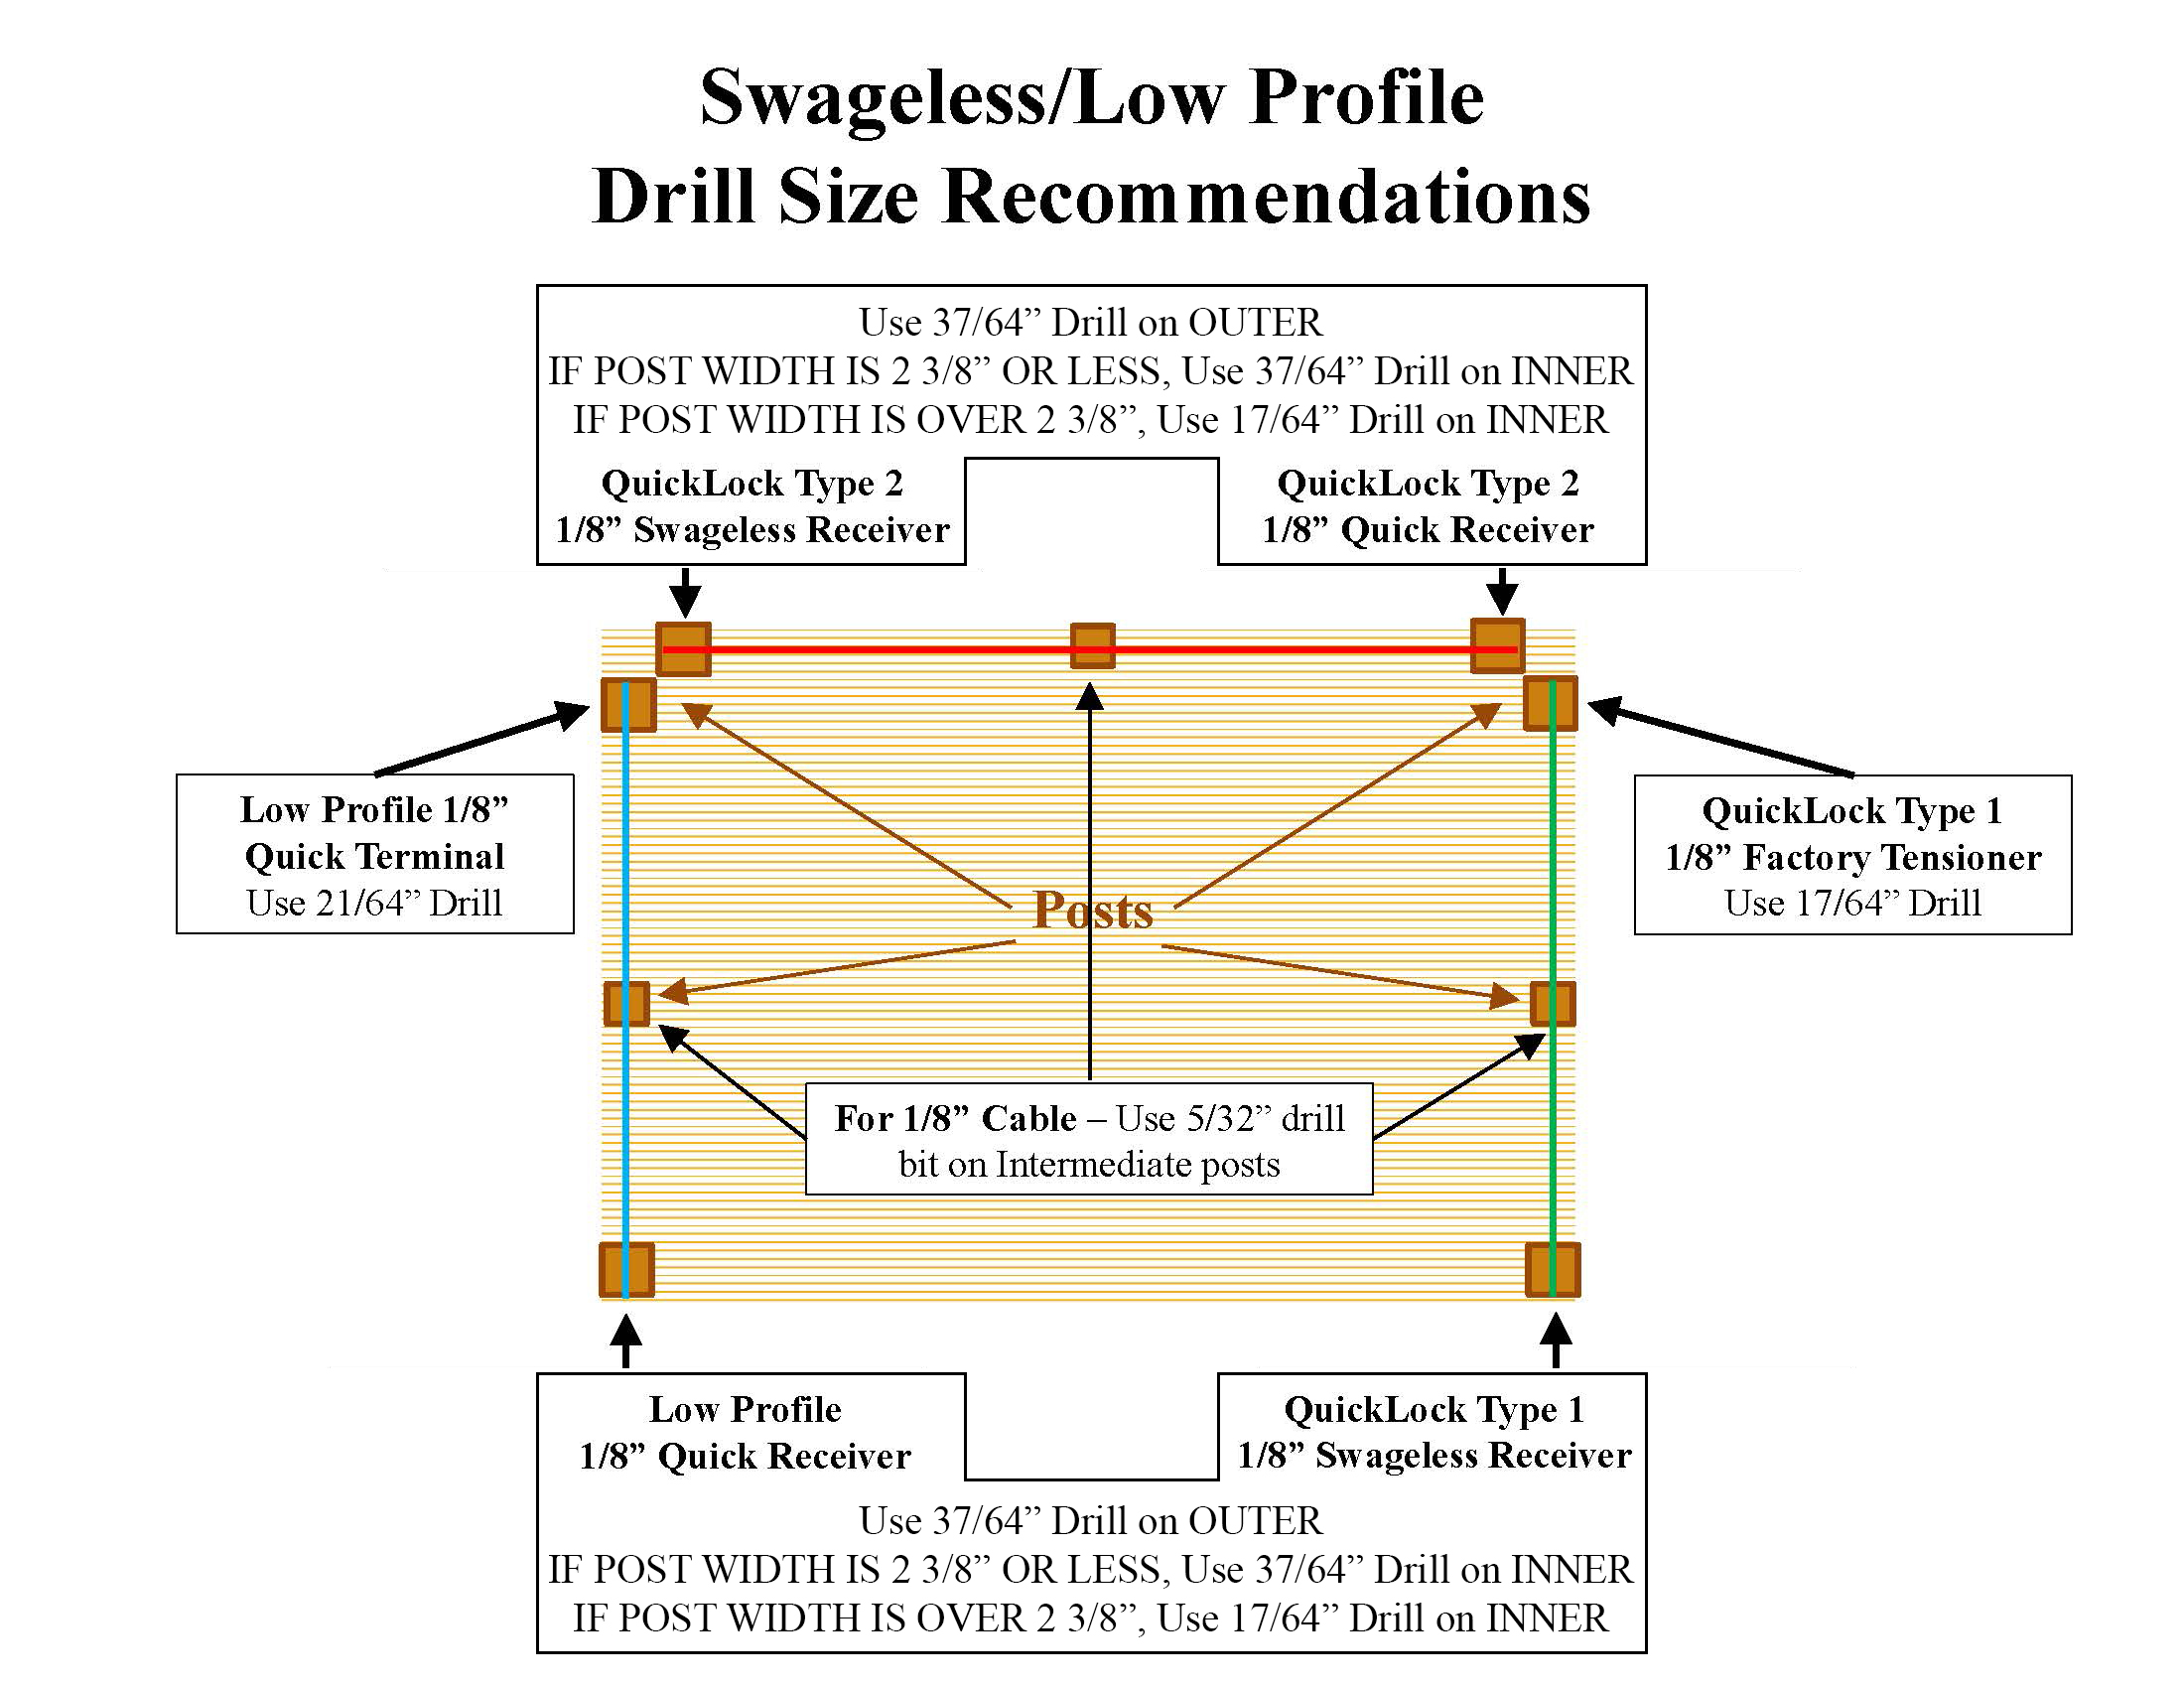 Swageless & Low Profile Assembly Drill Size Recommendations for CableView Deck Railing Systems